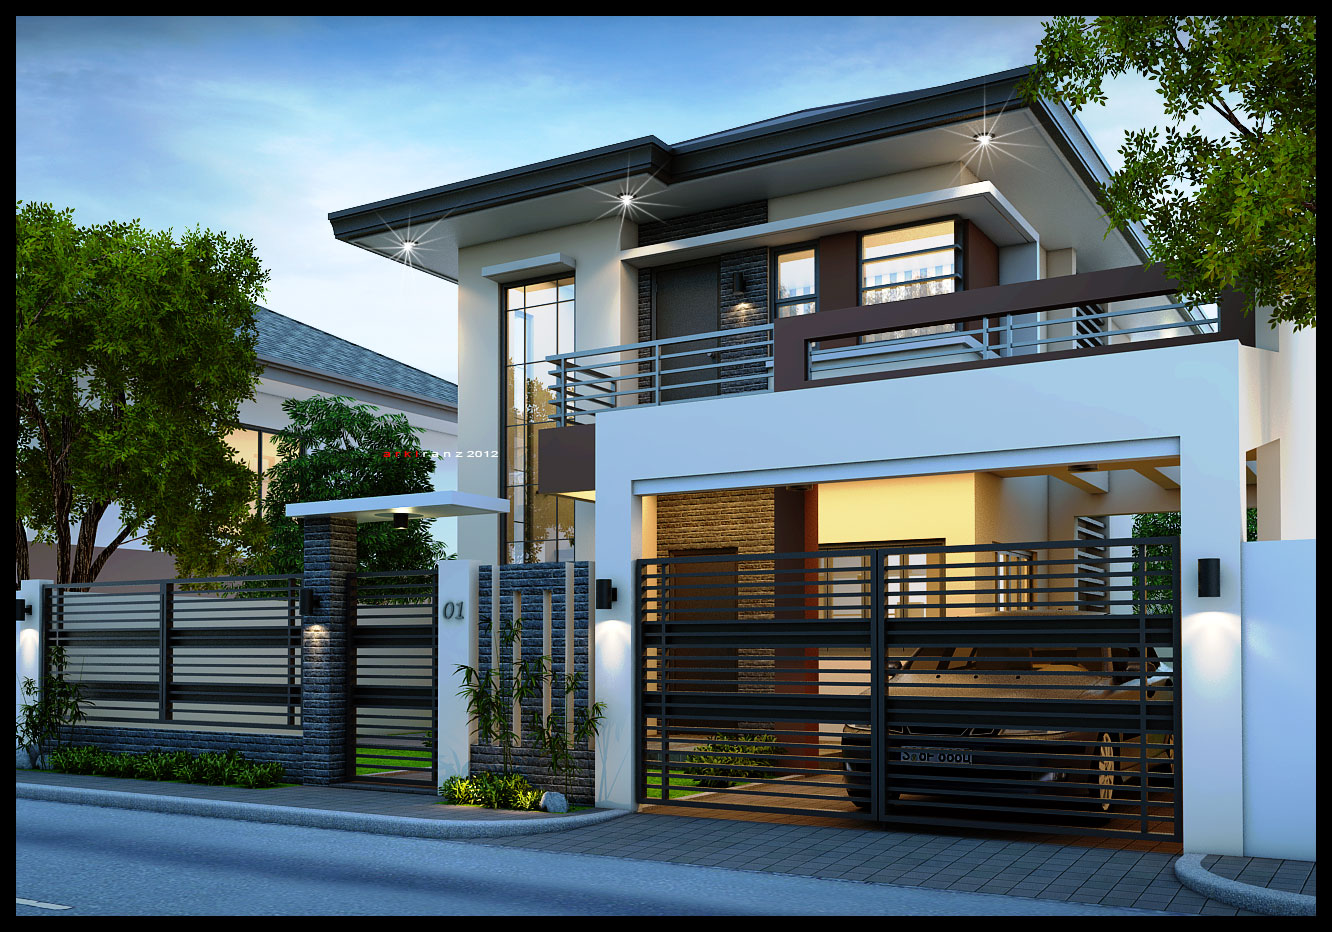 Smart placement two storey house images ideas for 2 story house design